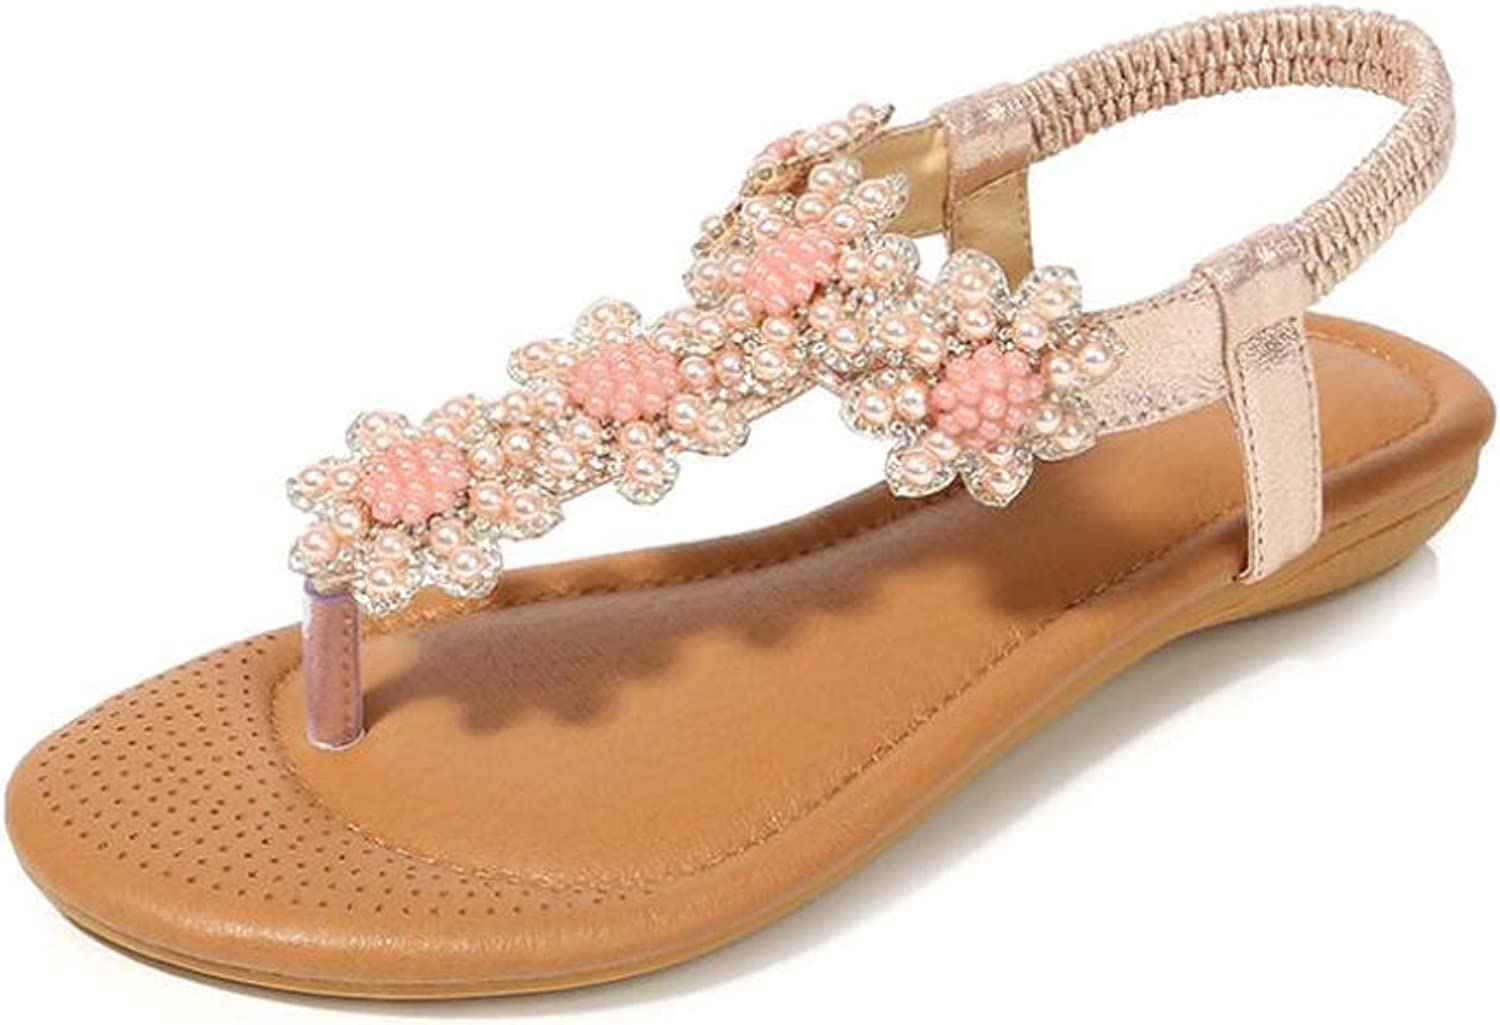 Sandals Summer Rhinestones Beaded Flat shoes Women's Casual Fashion shoes,A,36